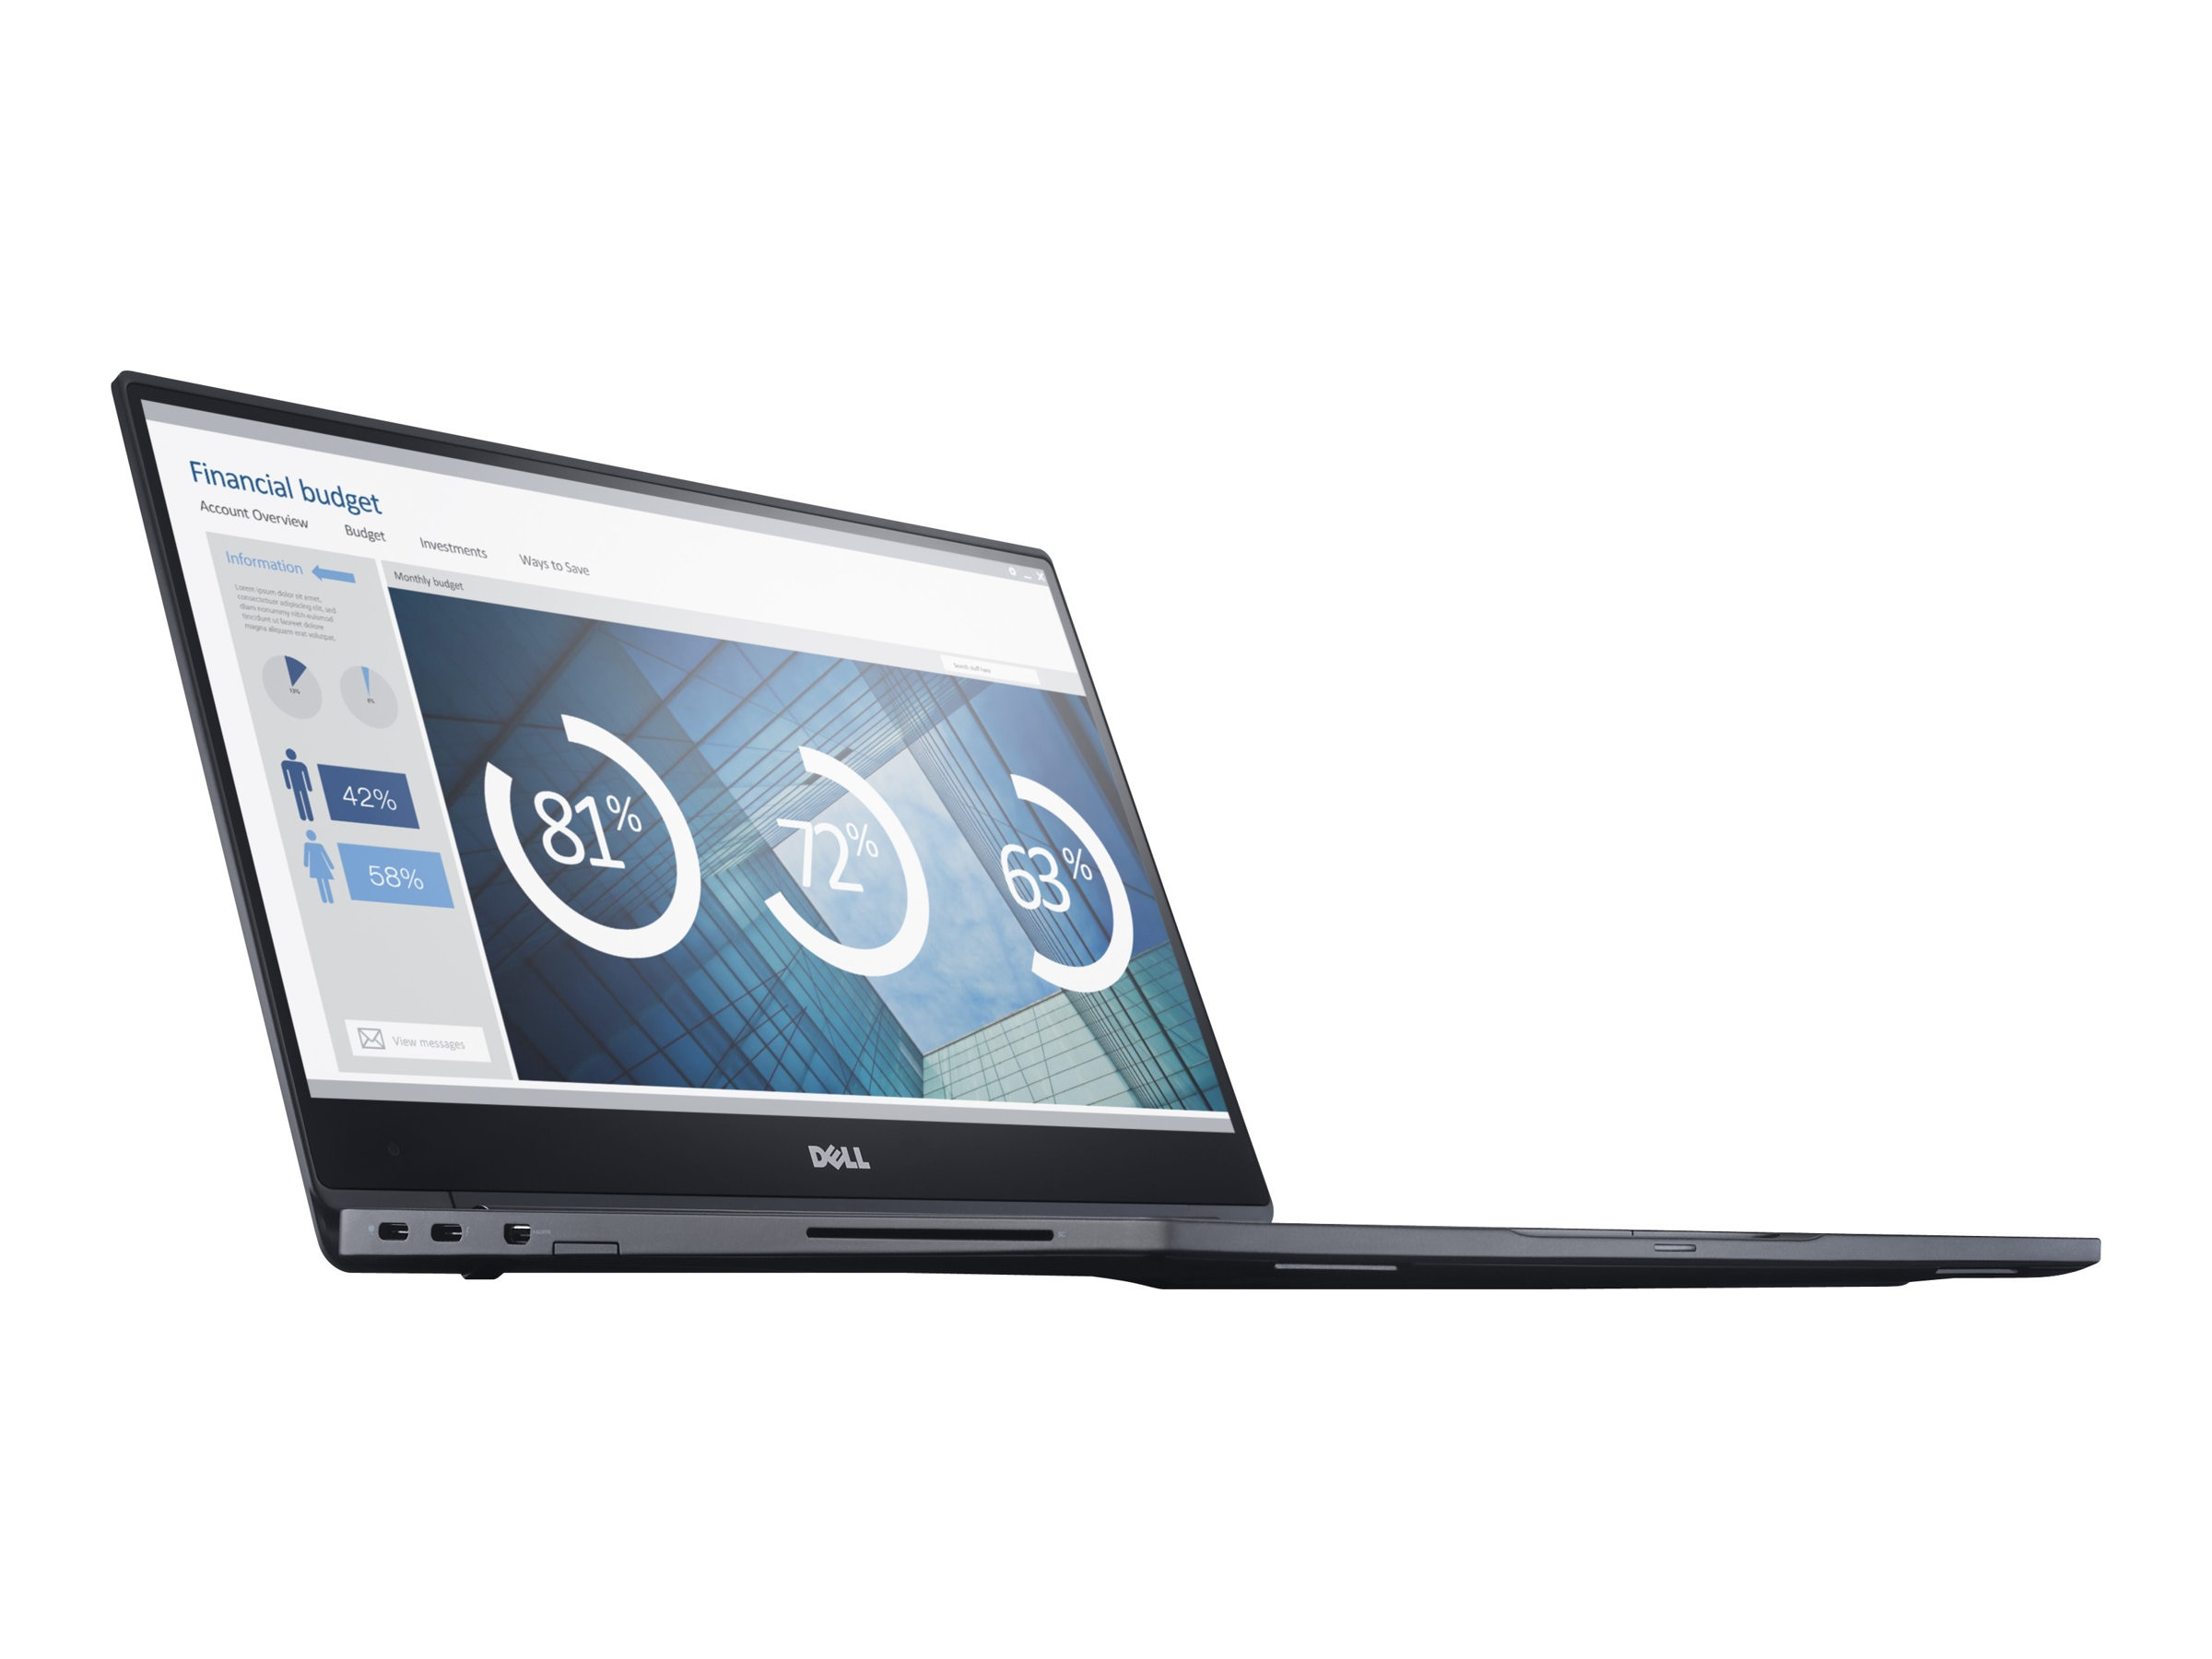 Dell Latitude 7370 Core m5-6Y57 1.1GHz 8GB 256GB SSD ac BT WC 4C 13.3 FHD W10P64